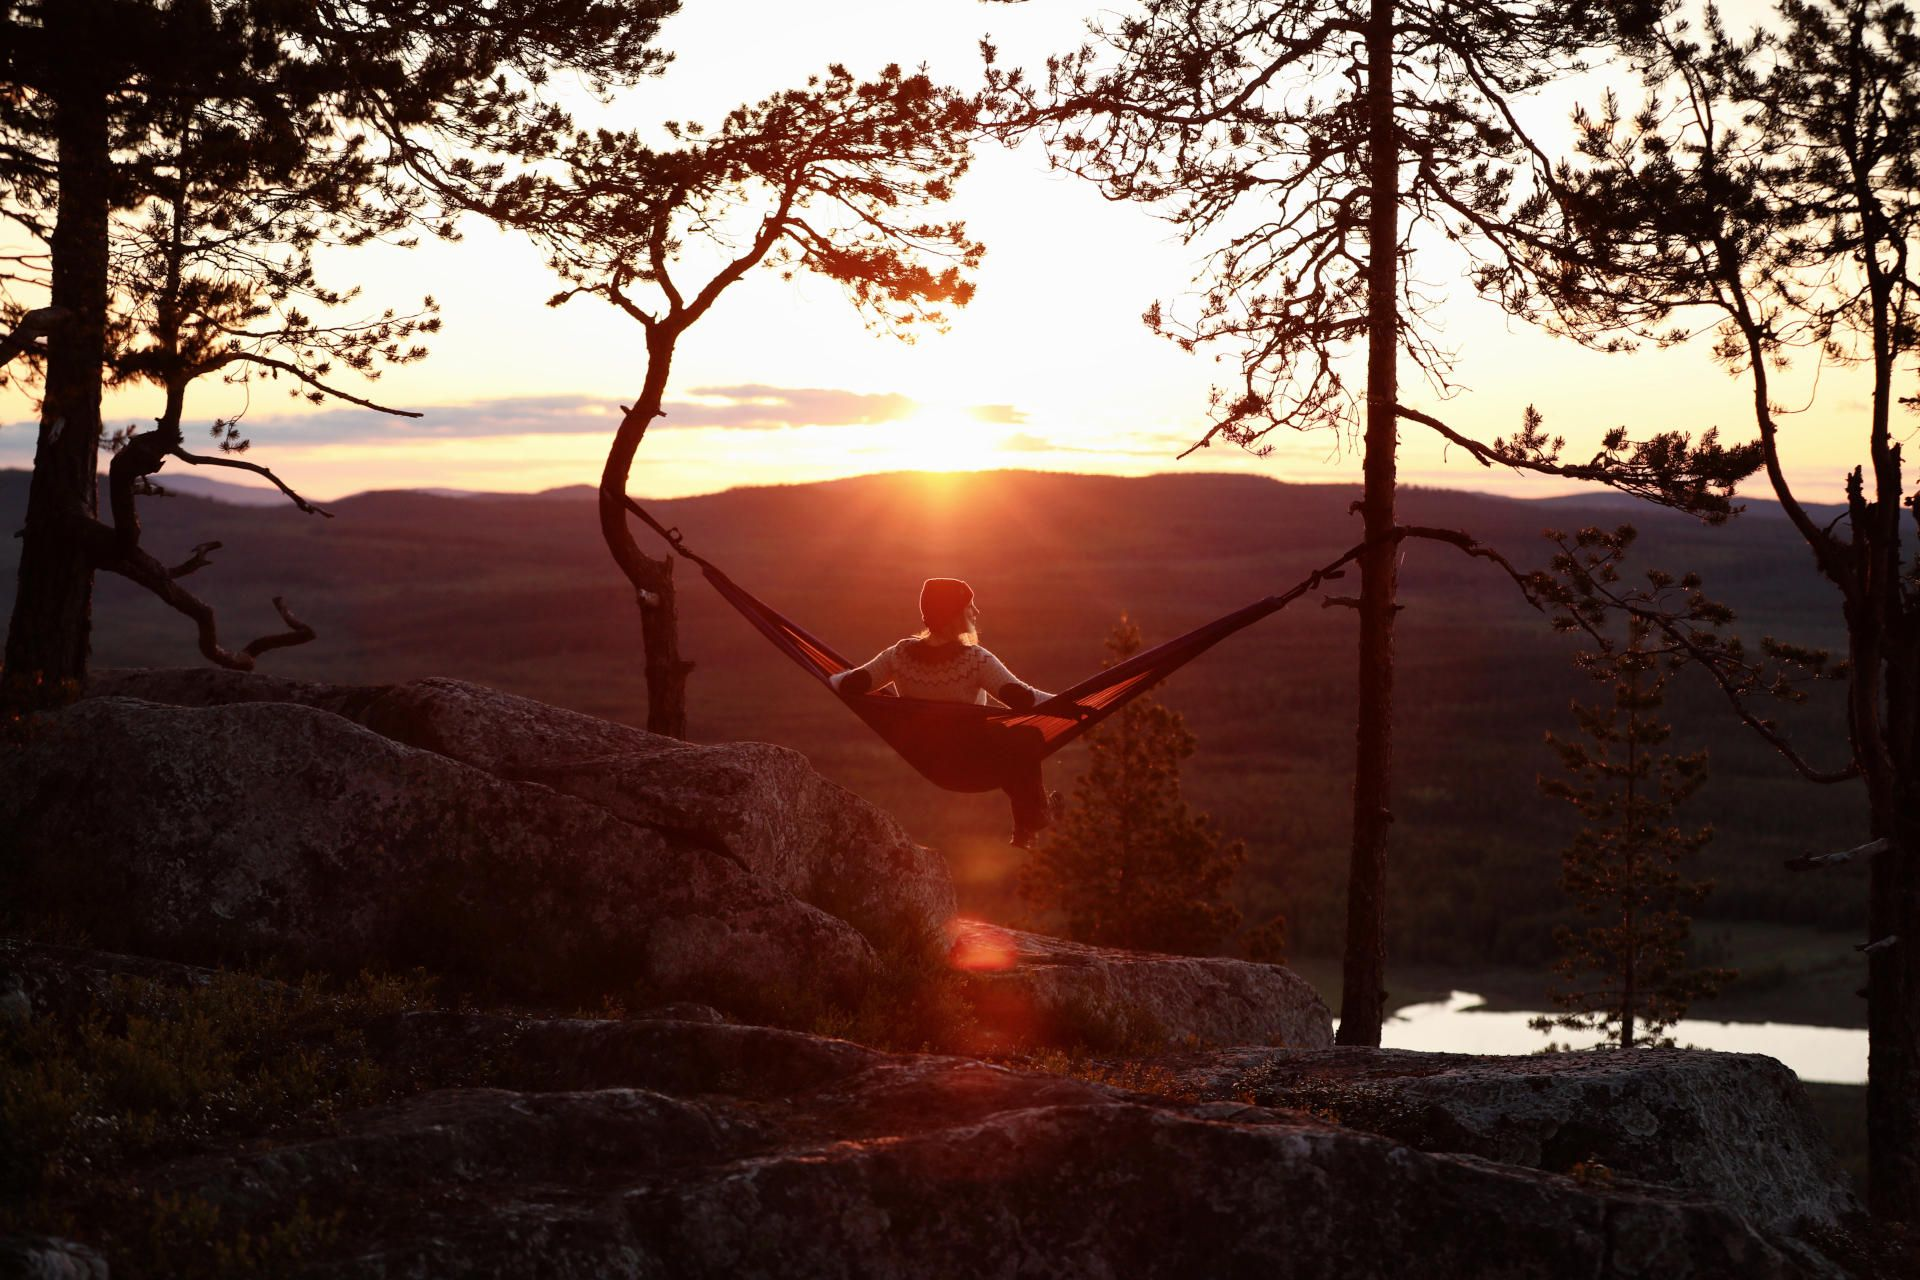 In a hammock atop Aavasaksa Hill in Lapland